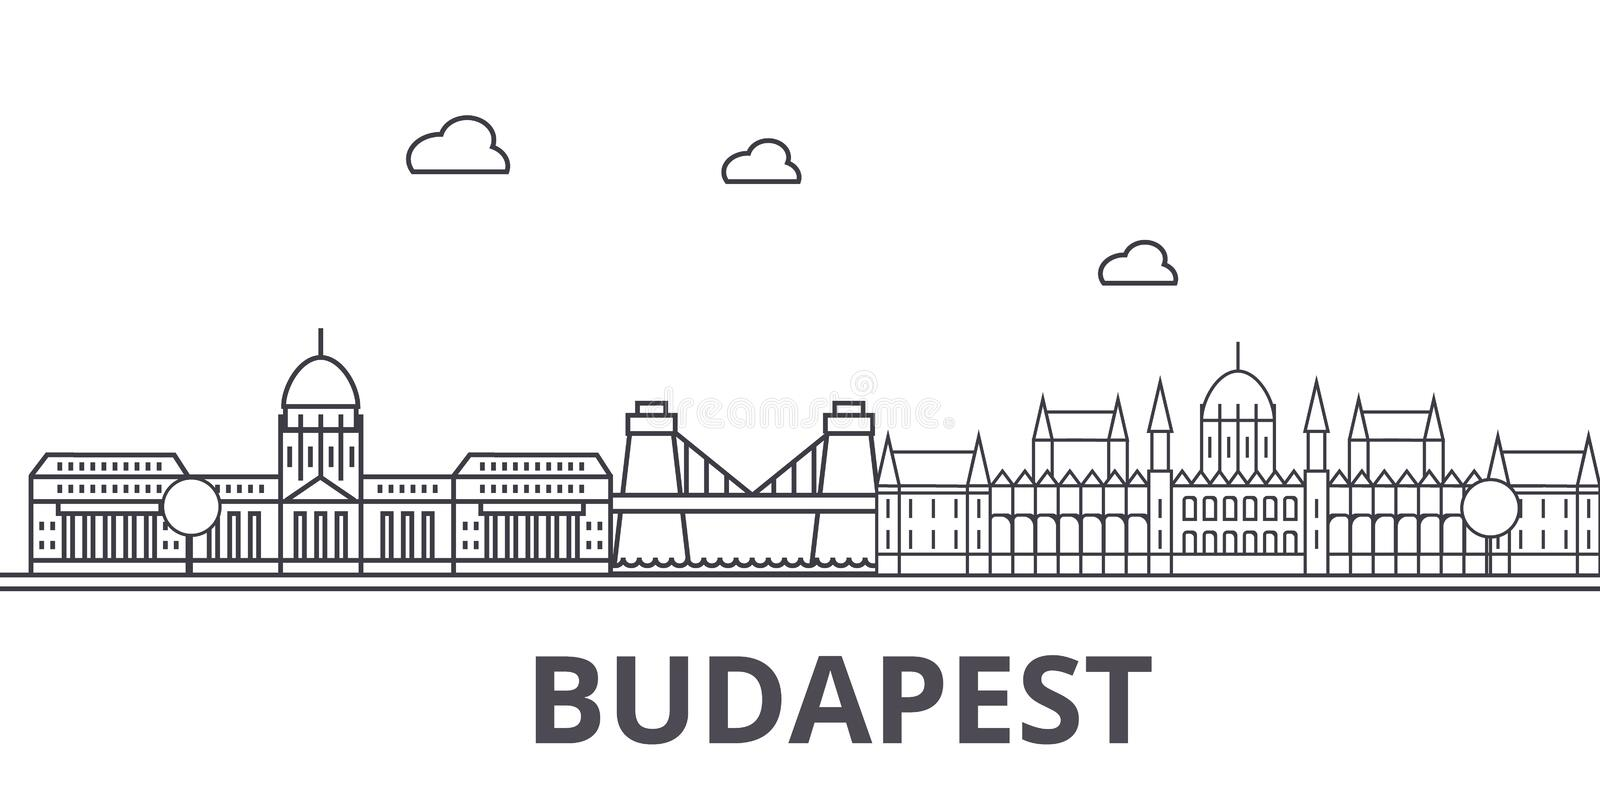 Budapest architecture line skyline illustration. Linear vector cityscape with famous landmarks, city sights, design. Icons. Editable strokes royalty free illustration